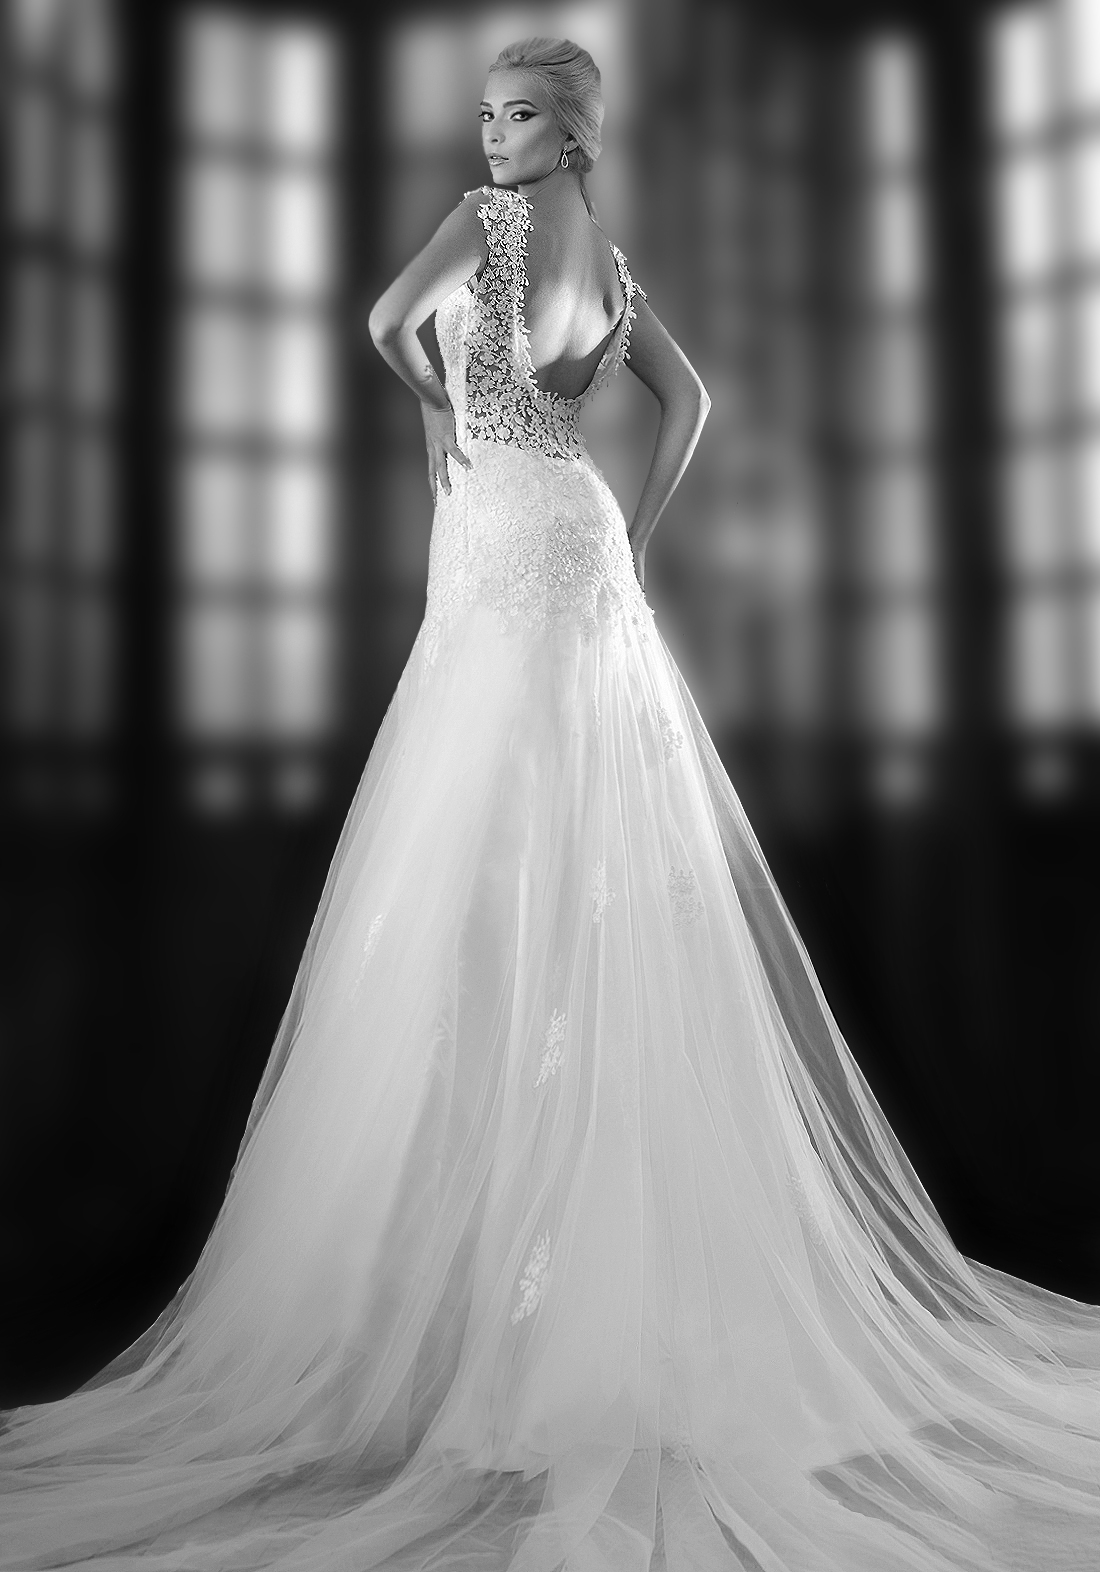 bien-savvy-wedding-dresses-2014-collection-3-01232014